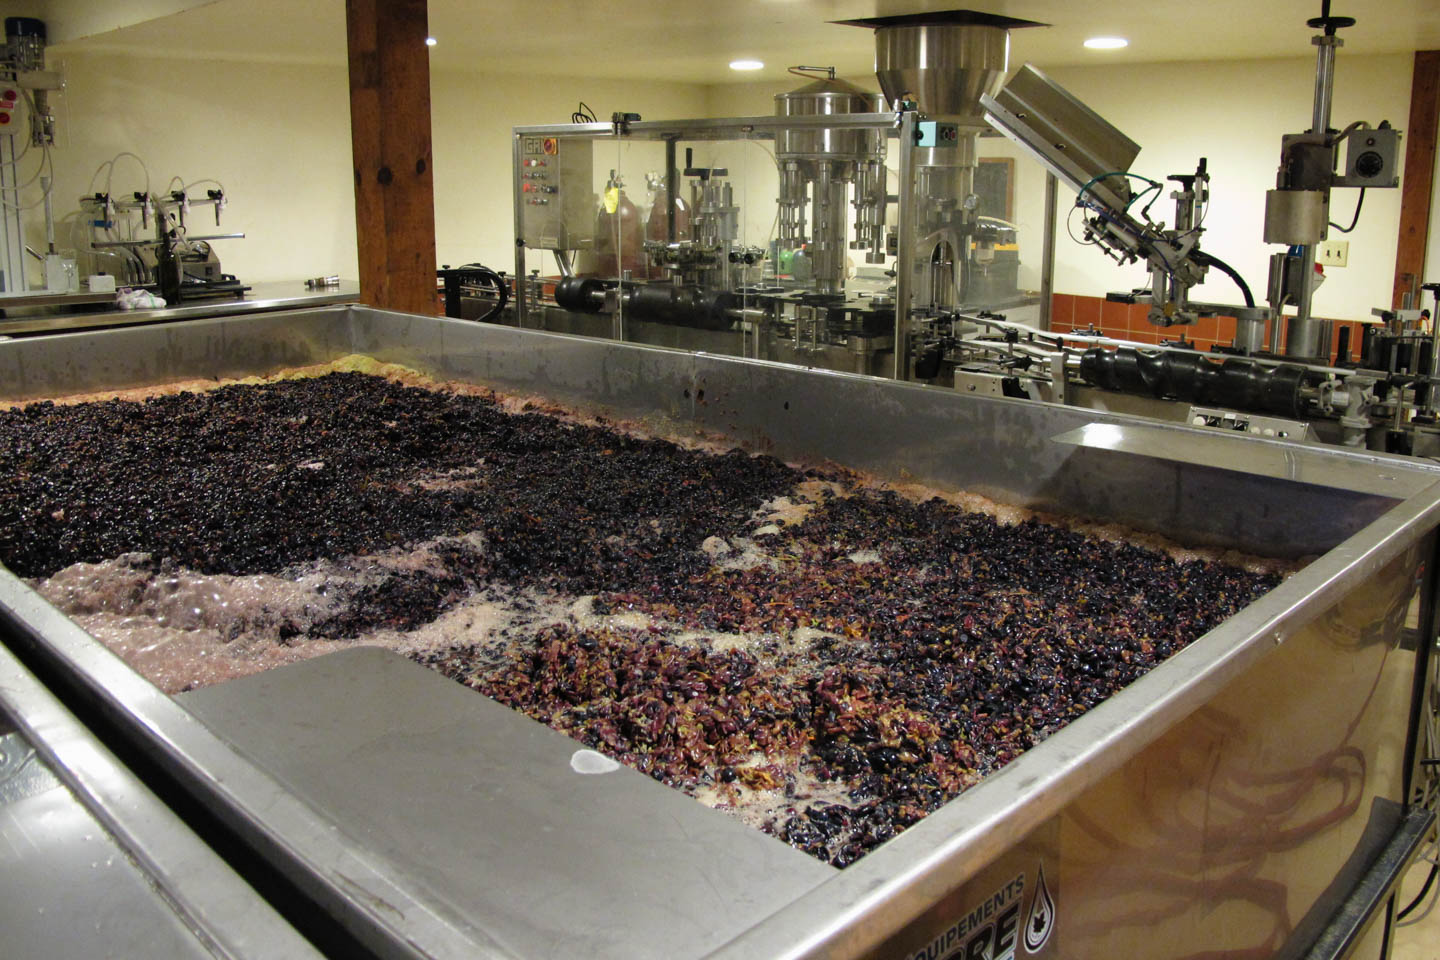 Wine grapes ready for the presses